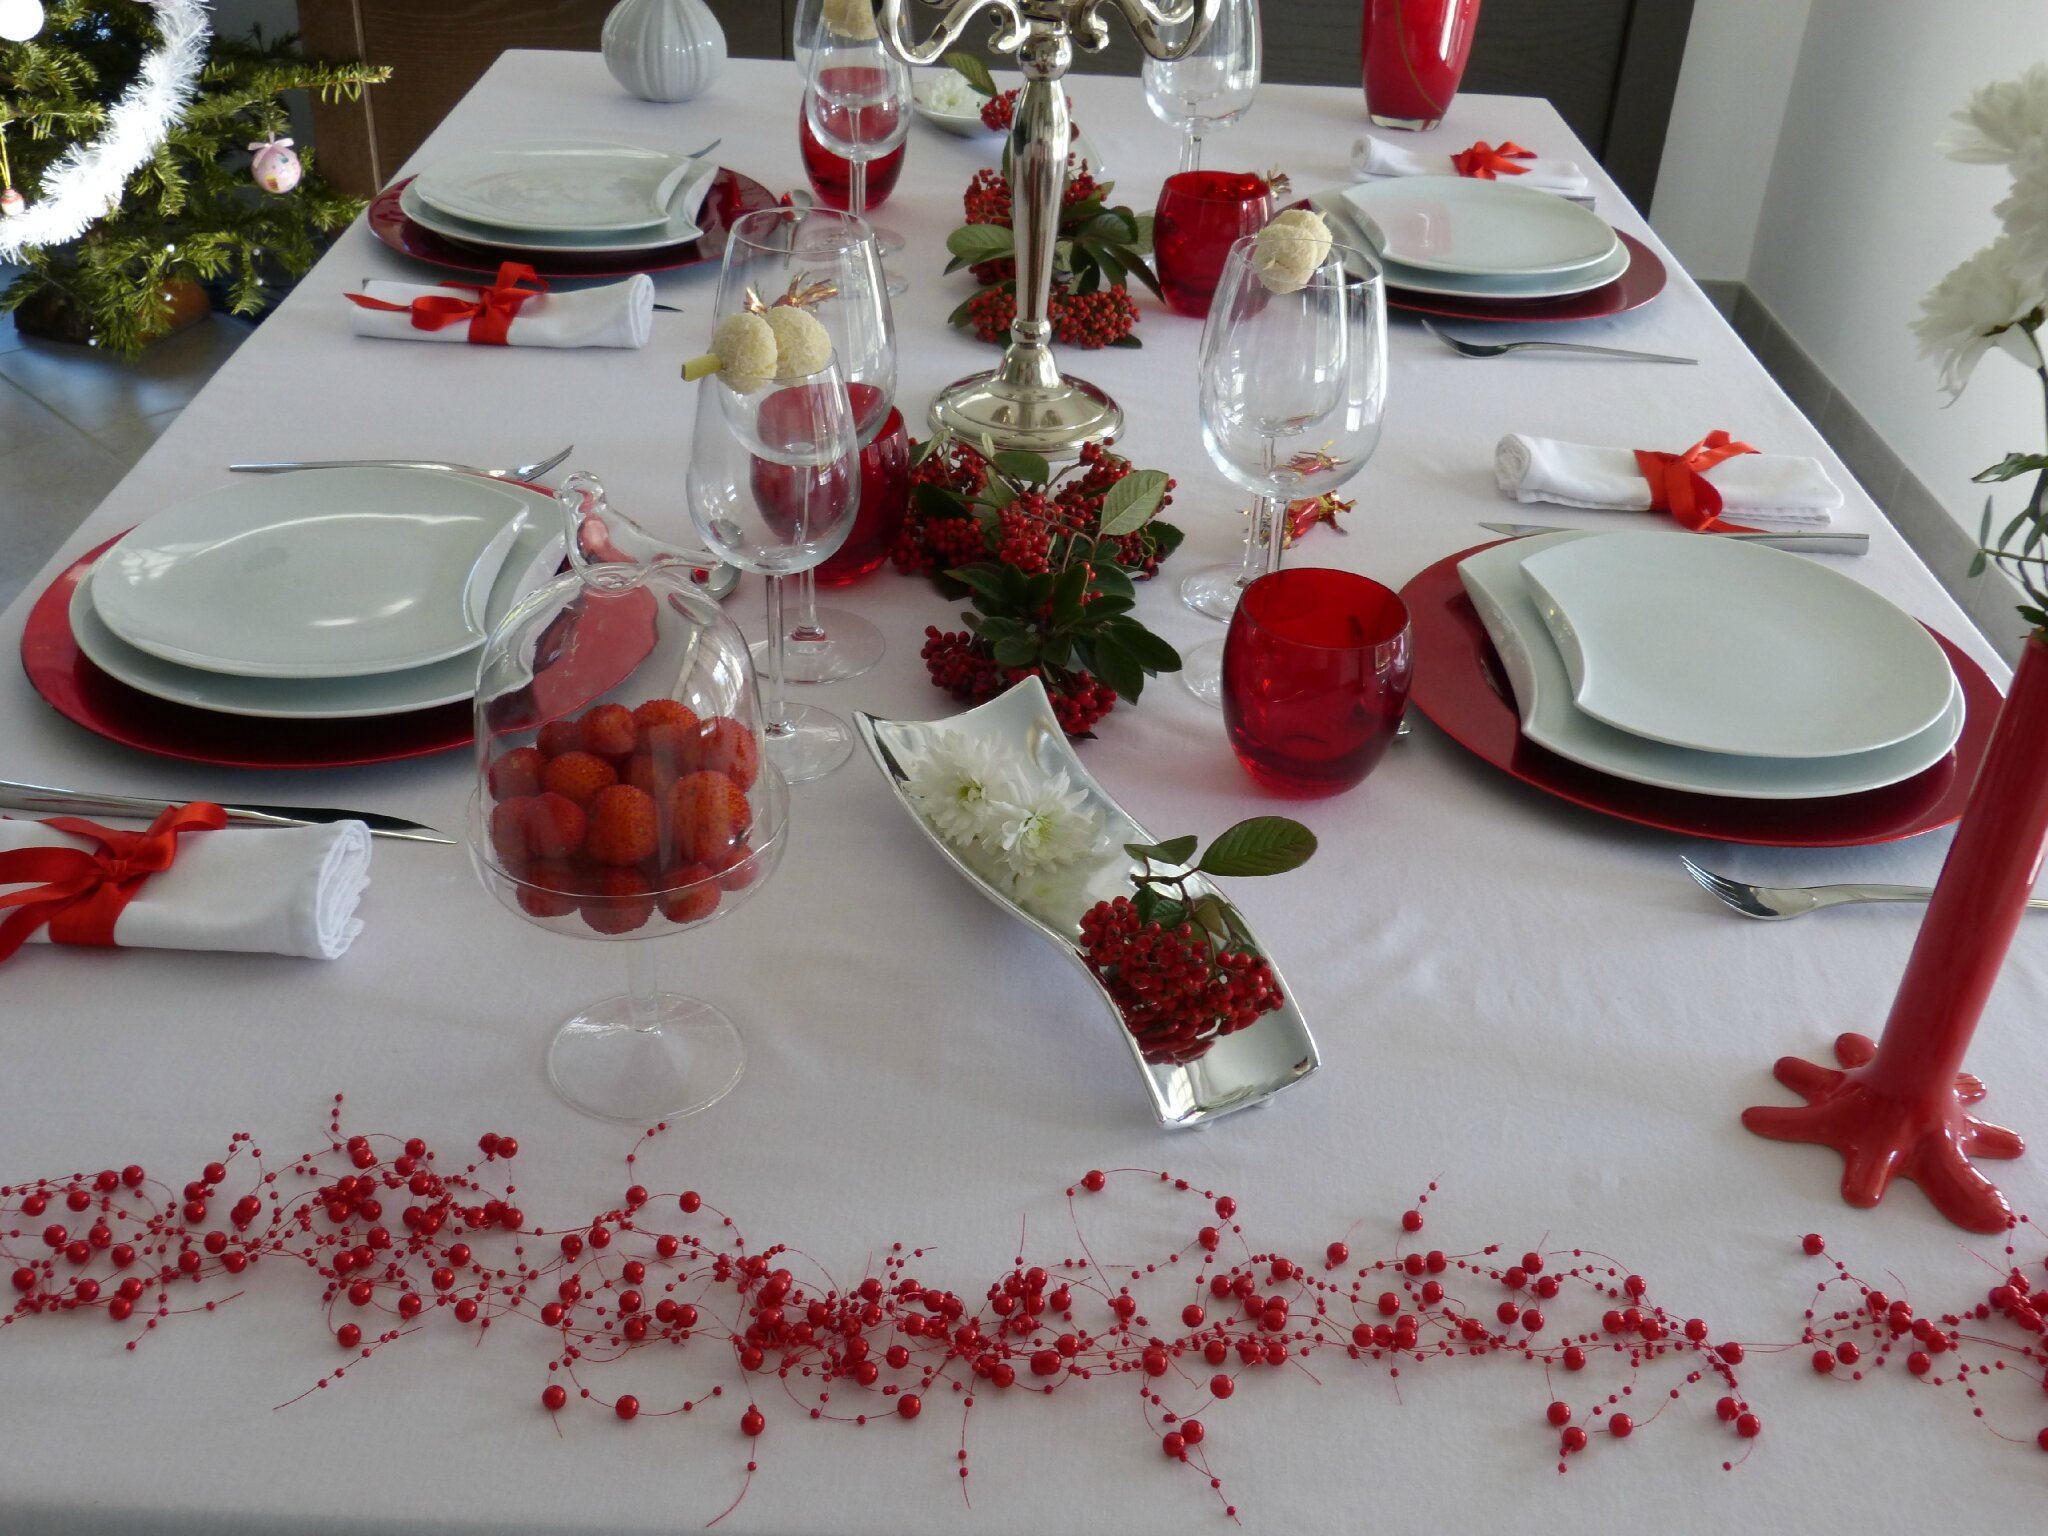 deco de table reveillon st sylvestre photos de